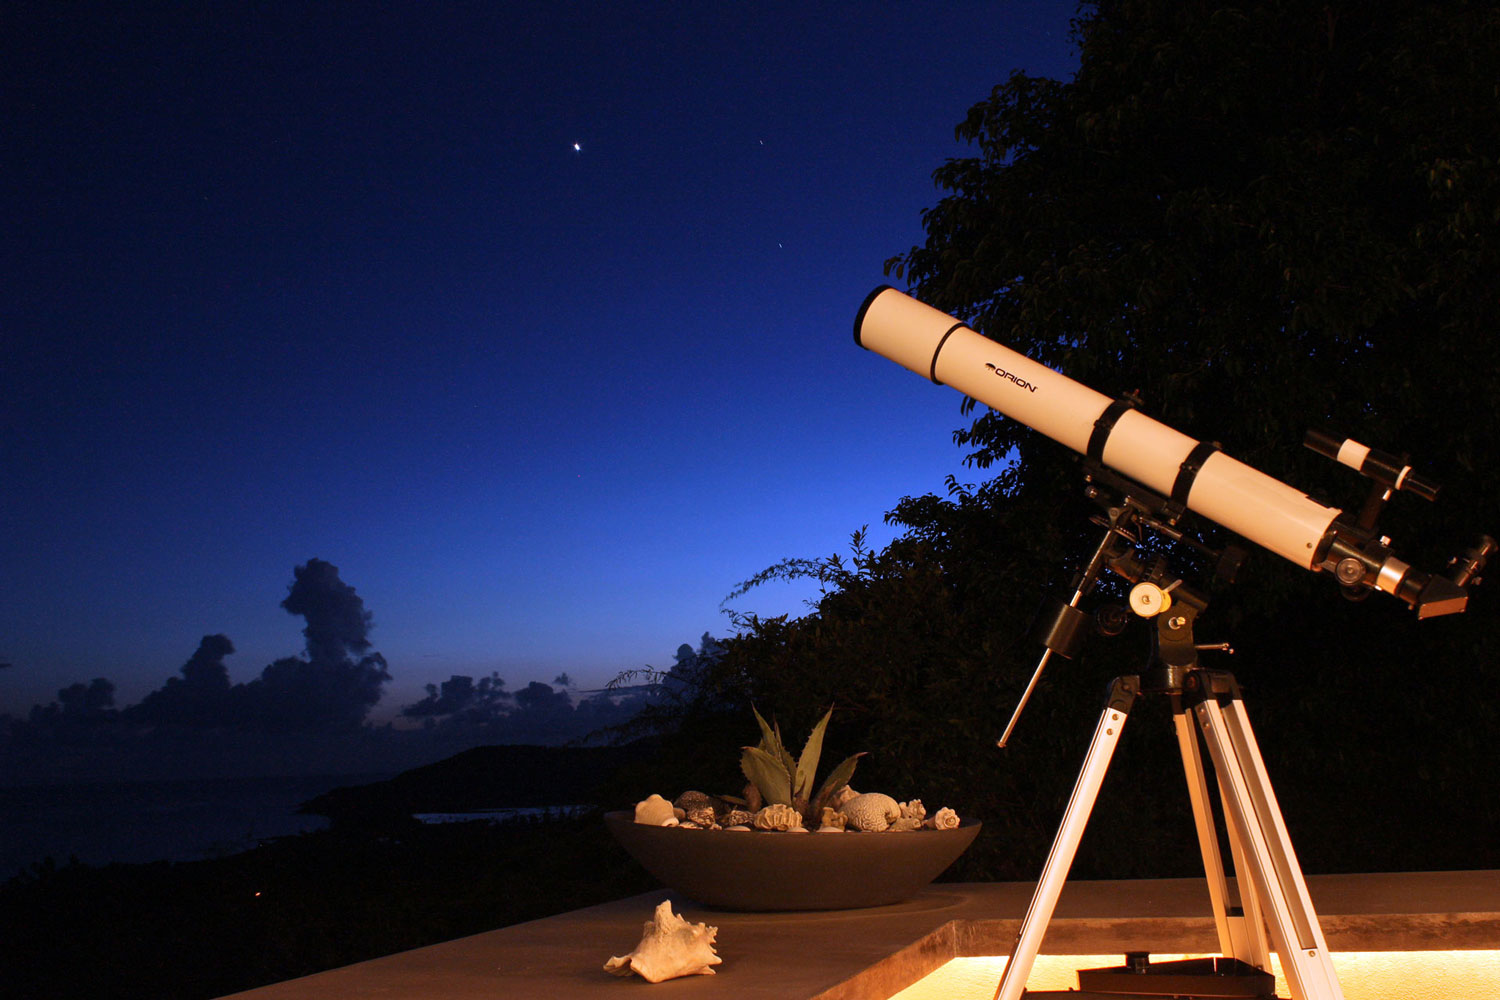 Telescope on deck at night